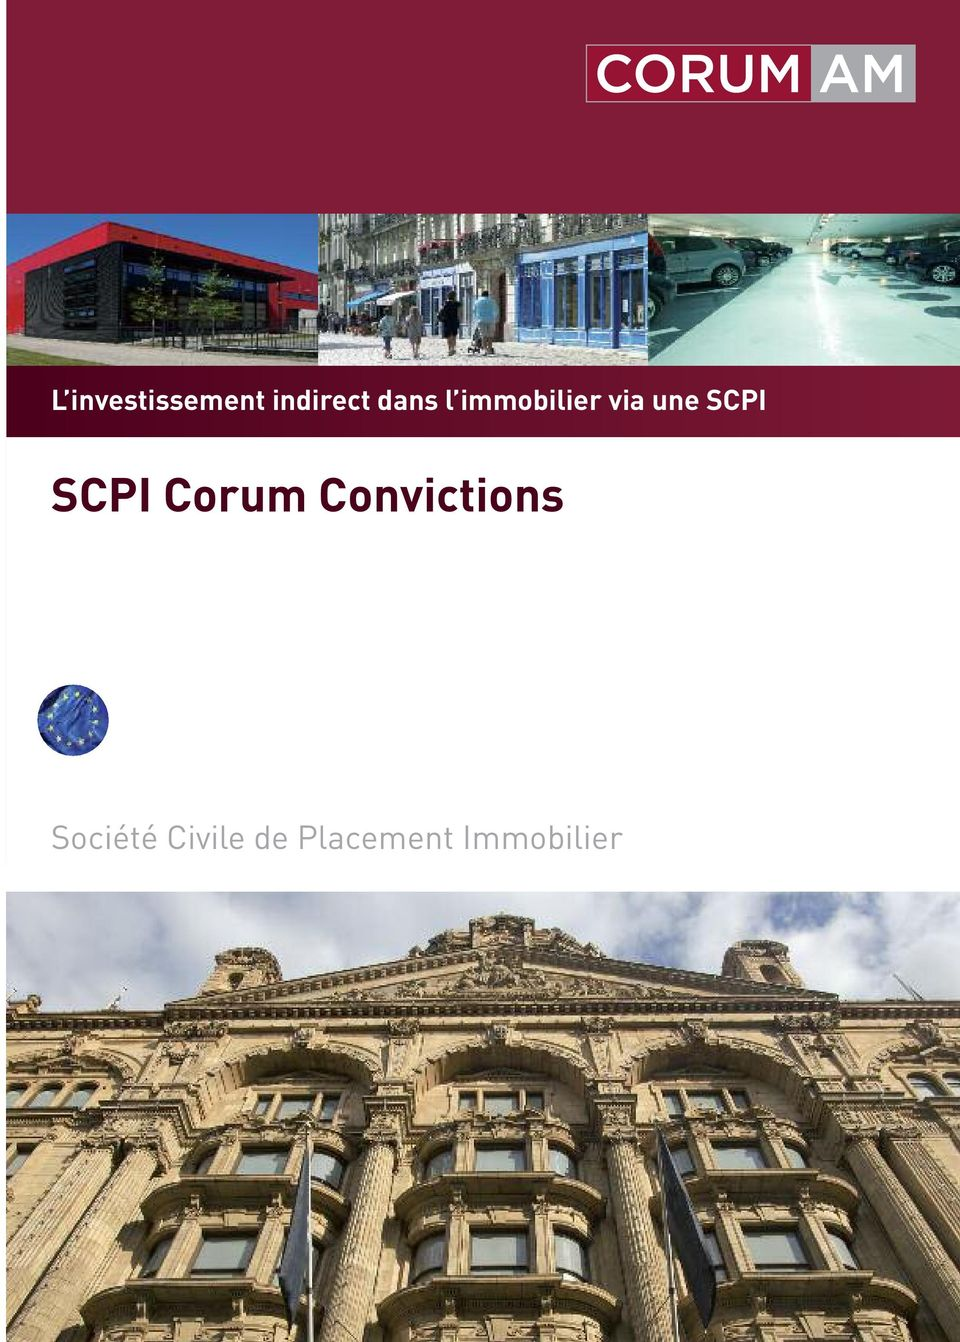 SCPI SCPI Corum Convictions